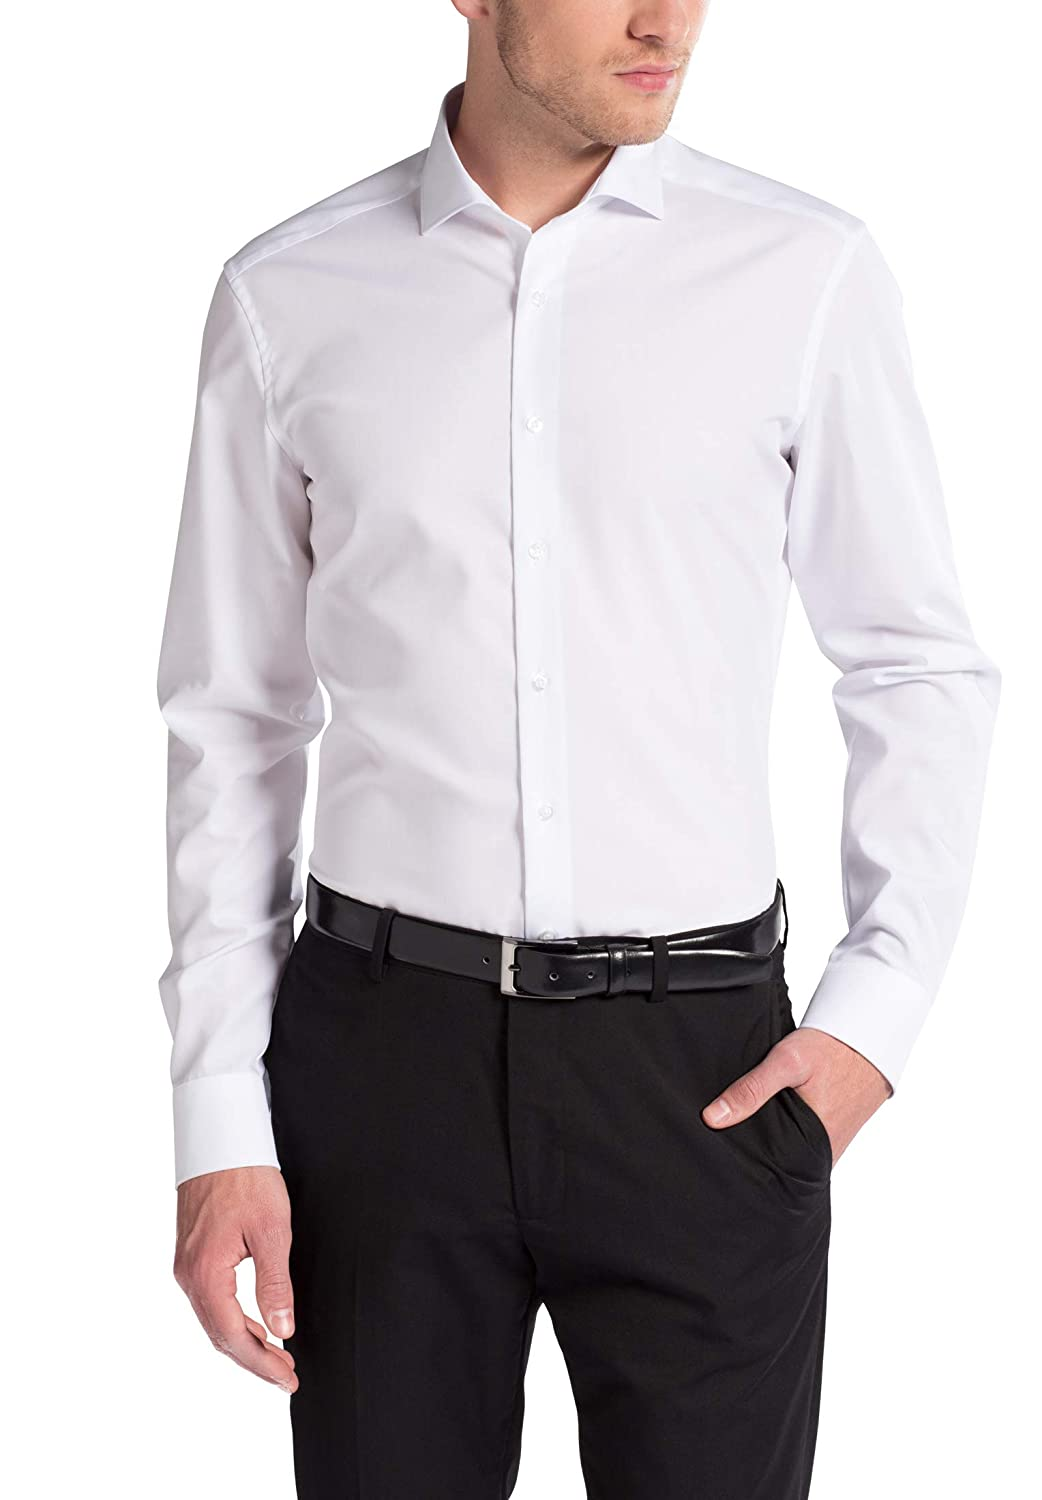 TALLA W40, Longitud manga larga. Eterna Long Sleeve Shirt Slim FIT Poplin Uni